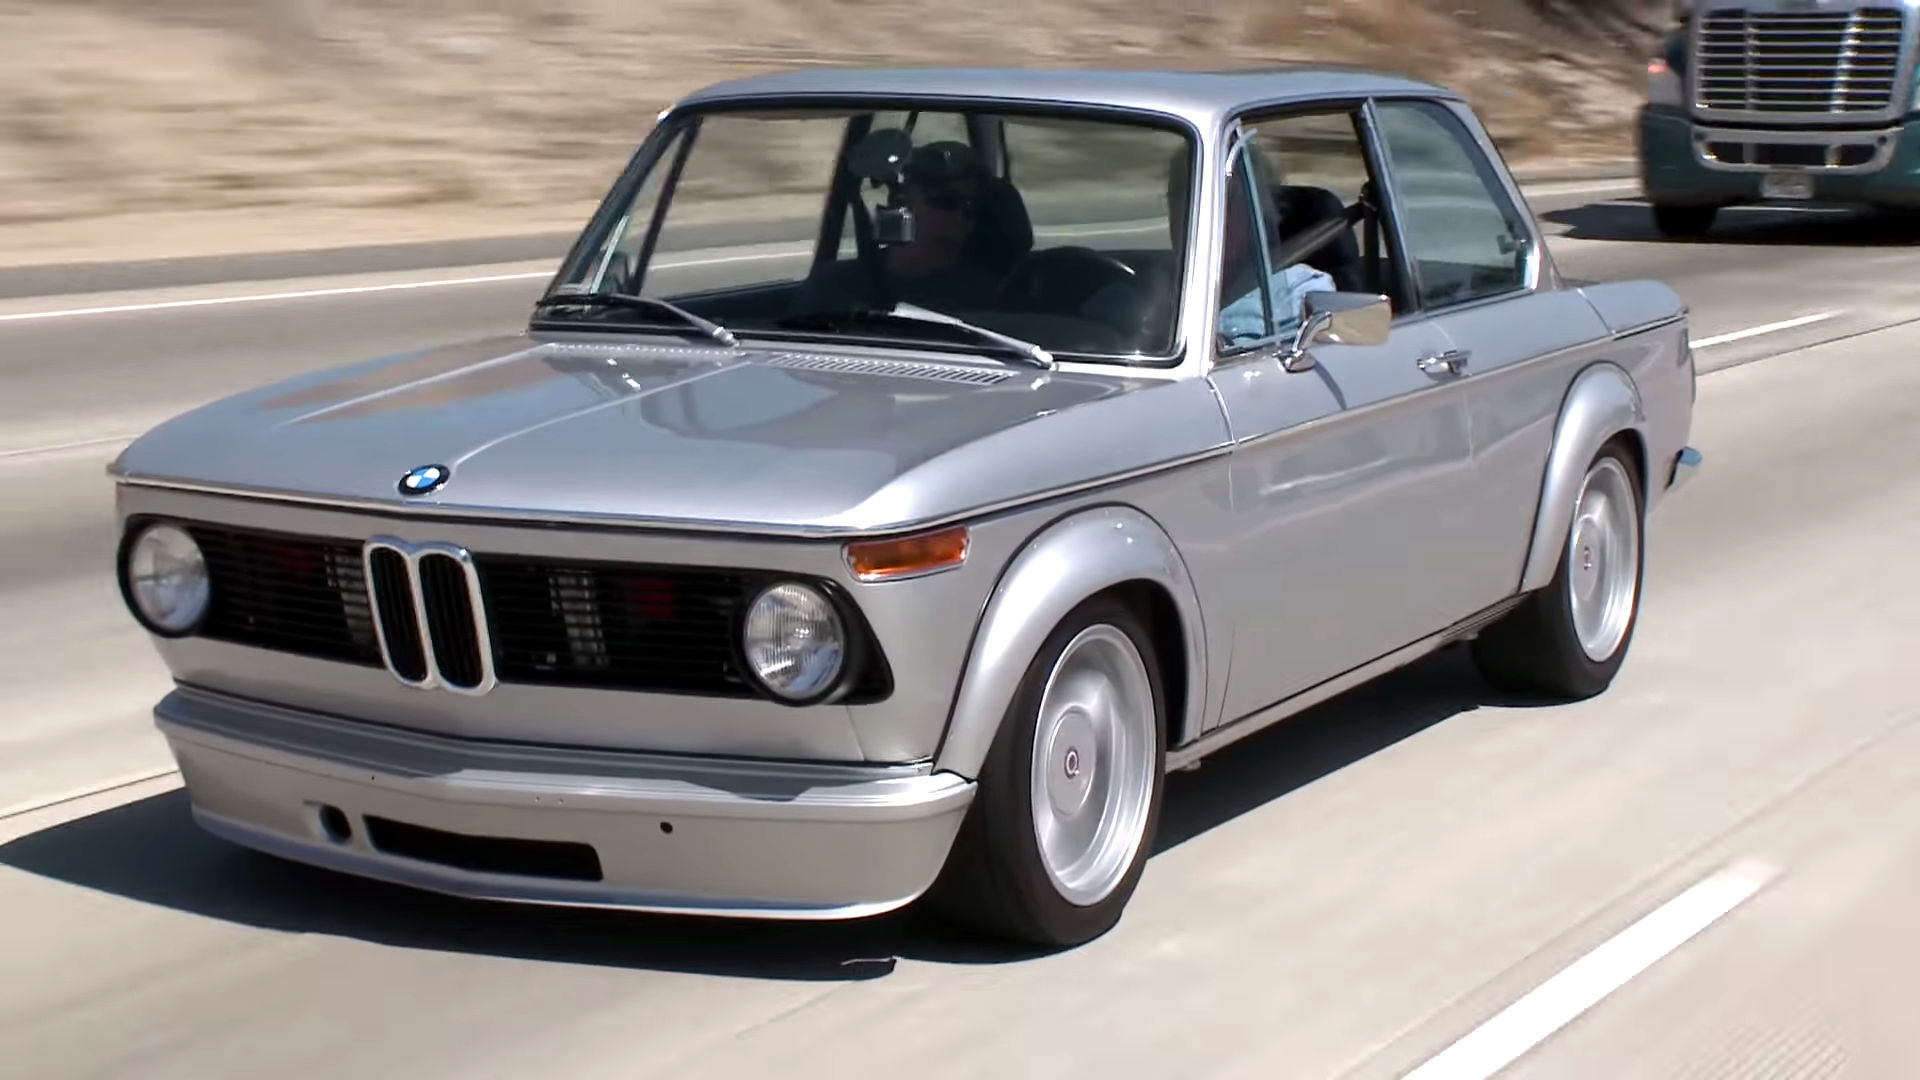 Bmw 2002 Tii For Sale >> Jay Leno Welcomes BMW 2002 With M3 Engine Into His Garage